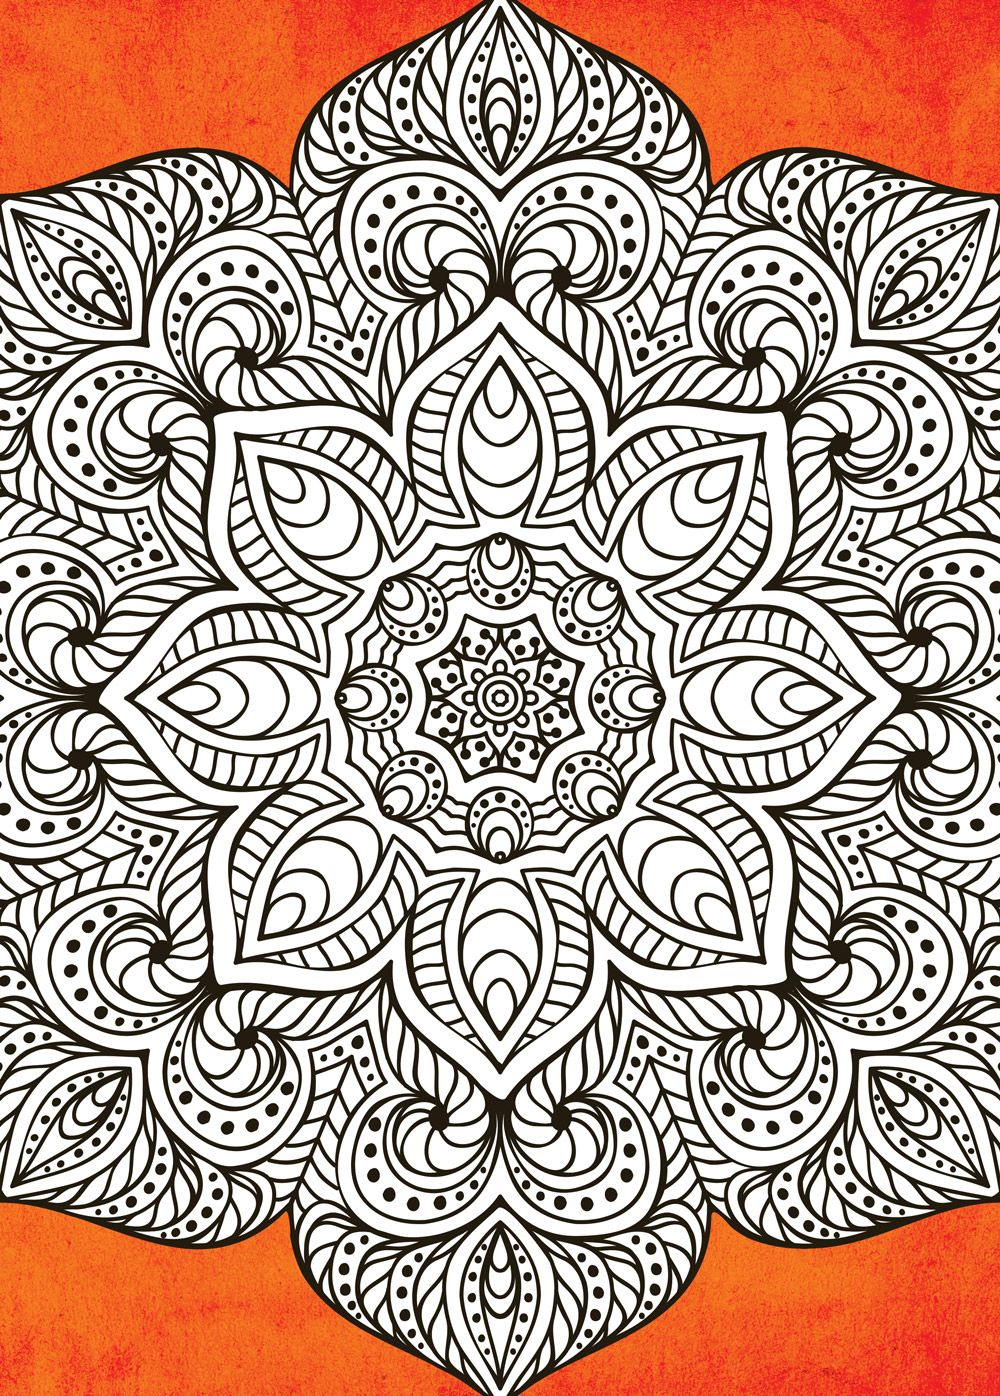 Art therapy coloring book michael omara - Michael O Mara Books Is The Leading Publisher Of Adult Colouring In The Uk Specialising In Beautifully Illustrated Adult Colouring Books And Quirky Art